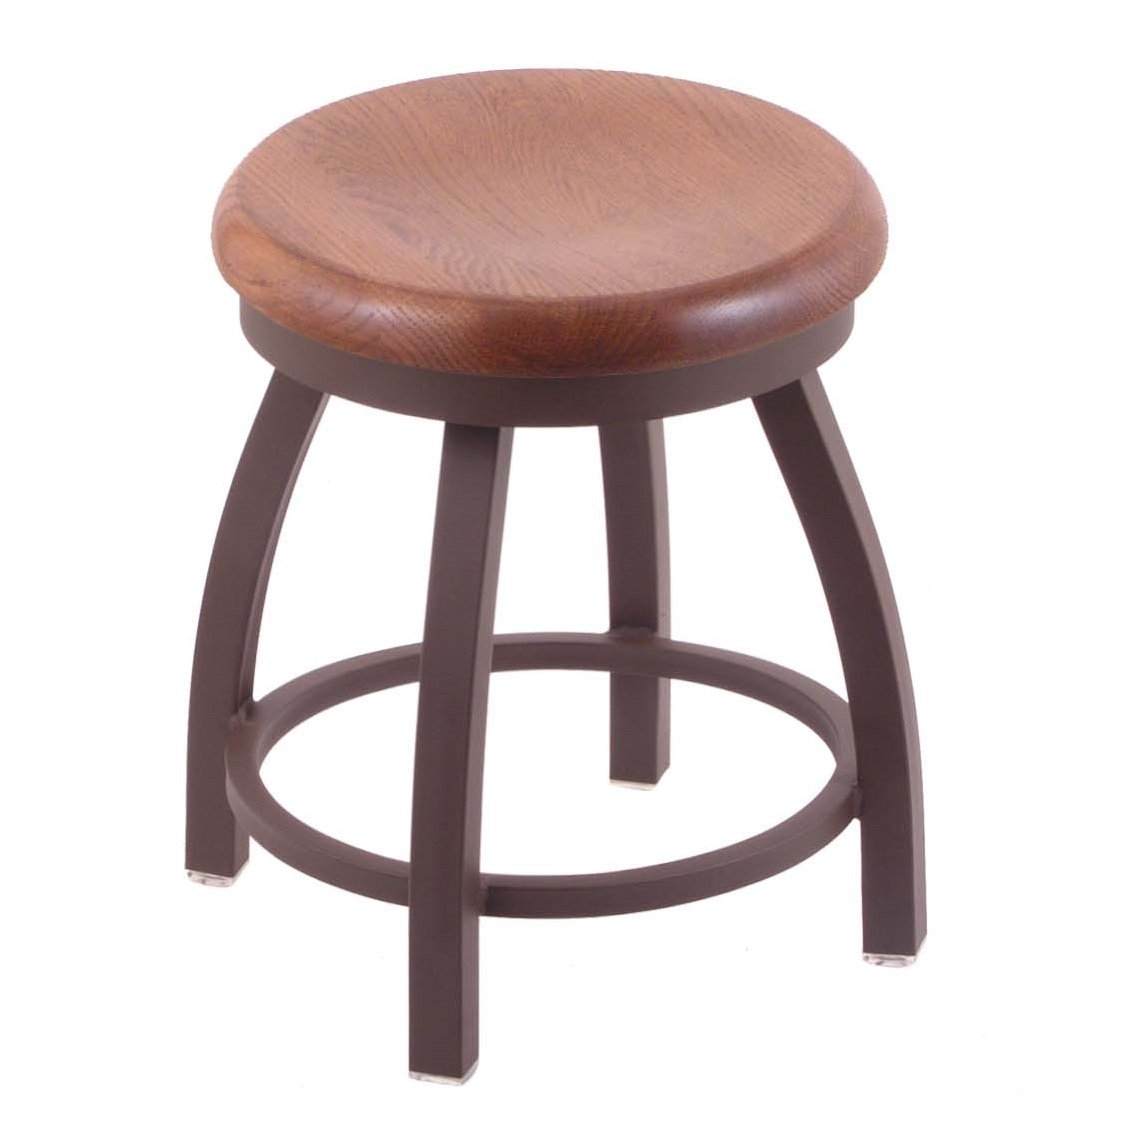 Holland Bar Stool Co. 802 Misha Vanity Stool with Bronze Finish and Swivel Seat, 18'', Medium Oak by Holland Bar Stool